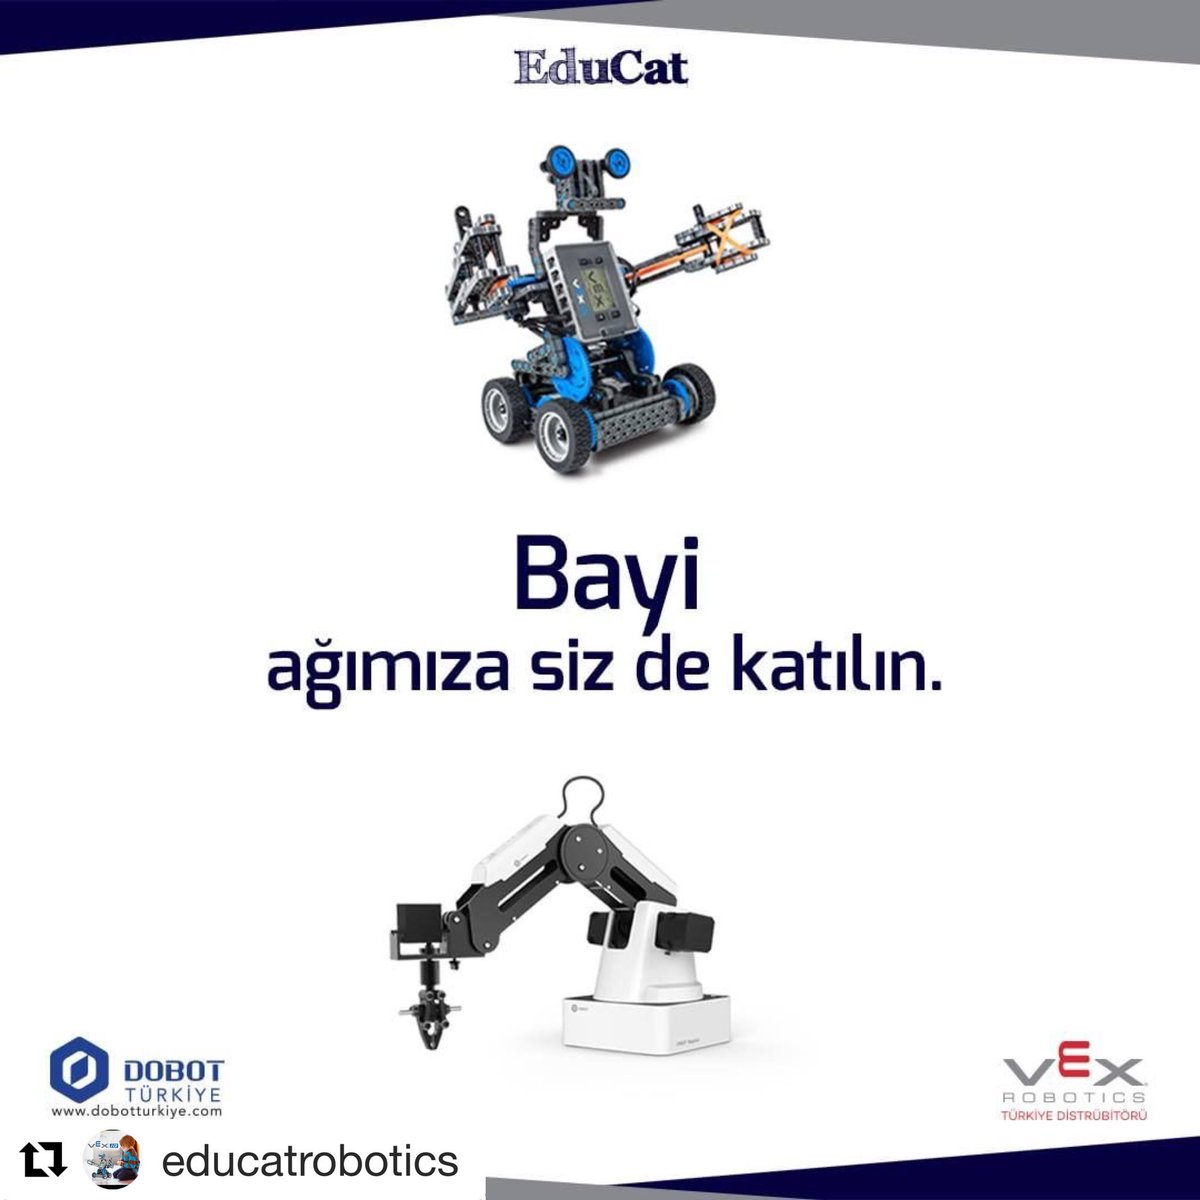 EducatRobotics photo